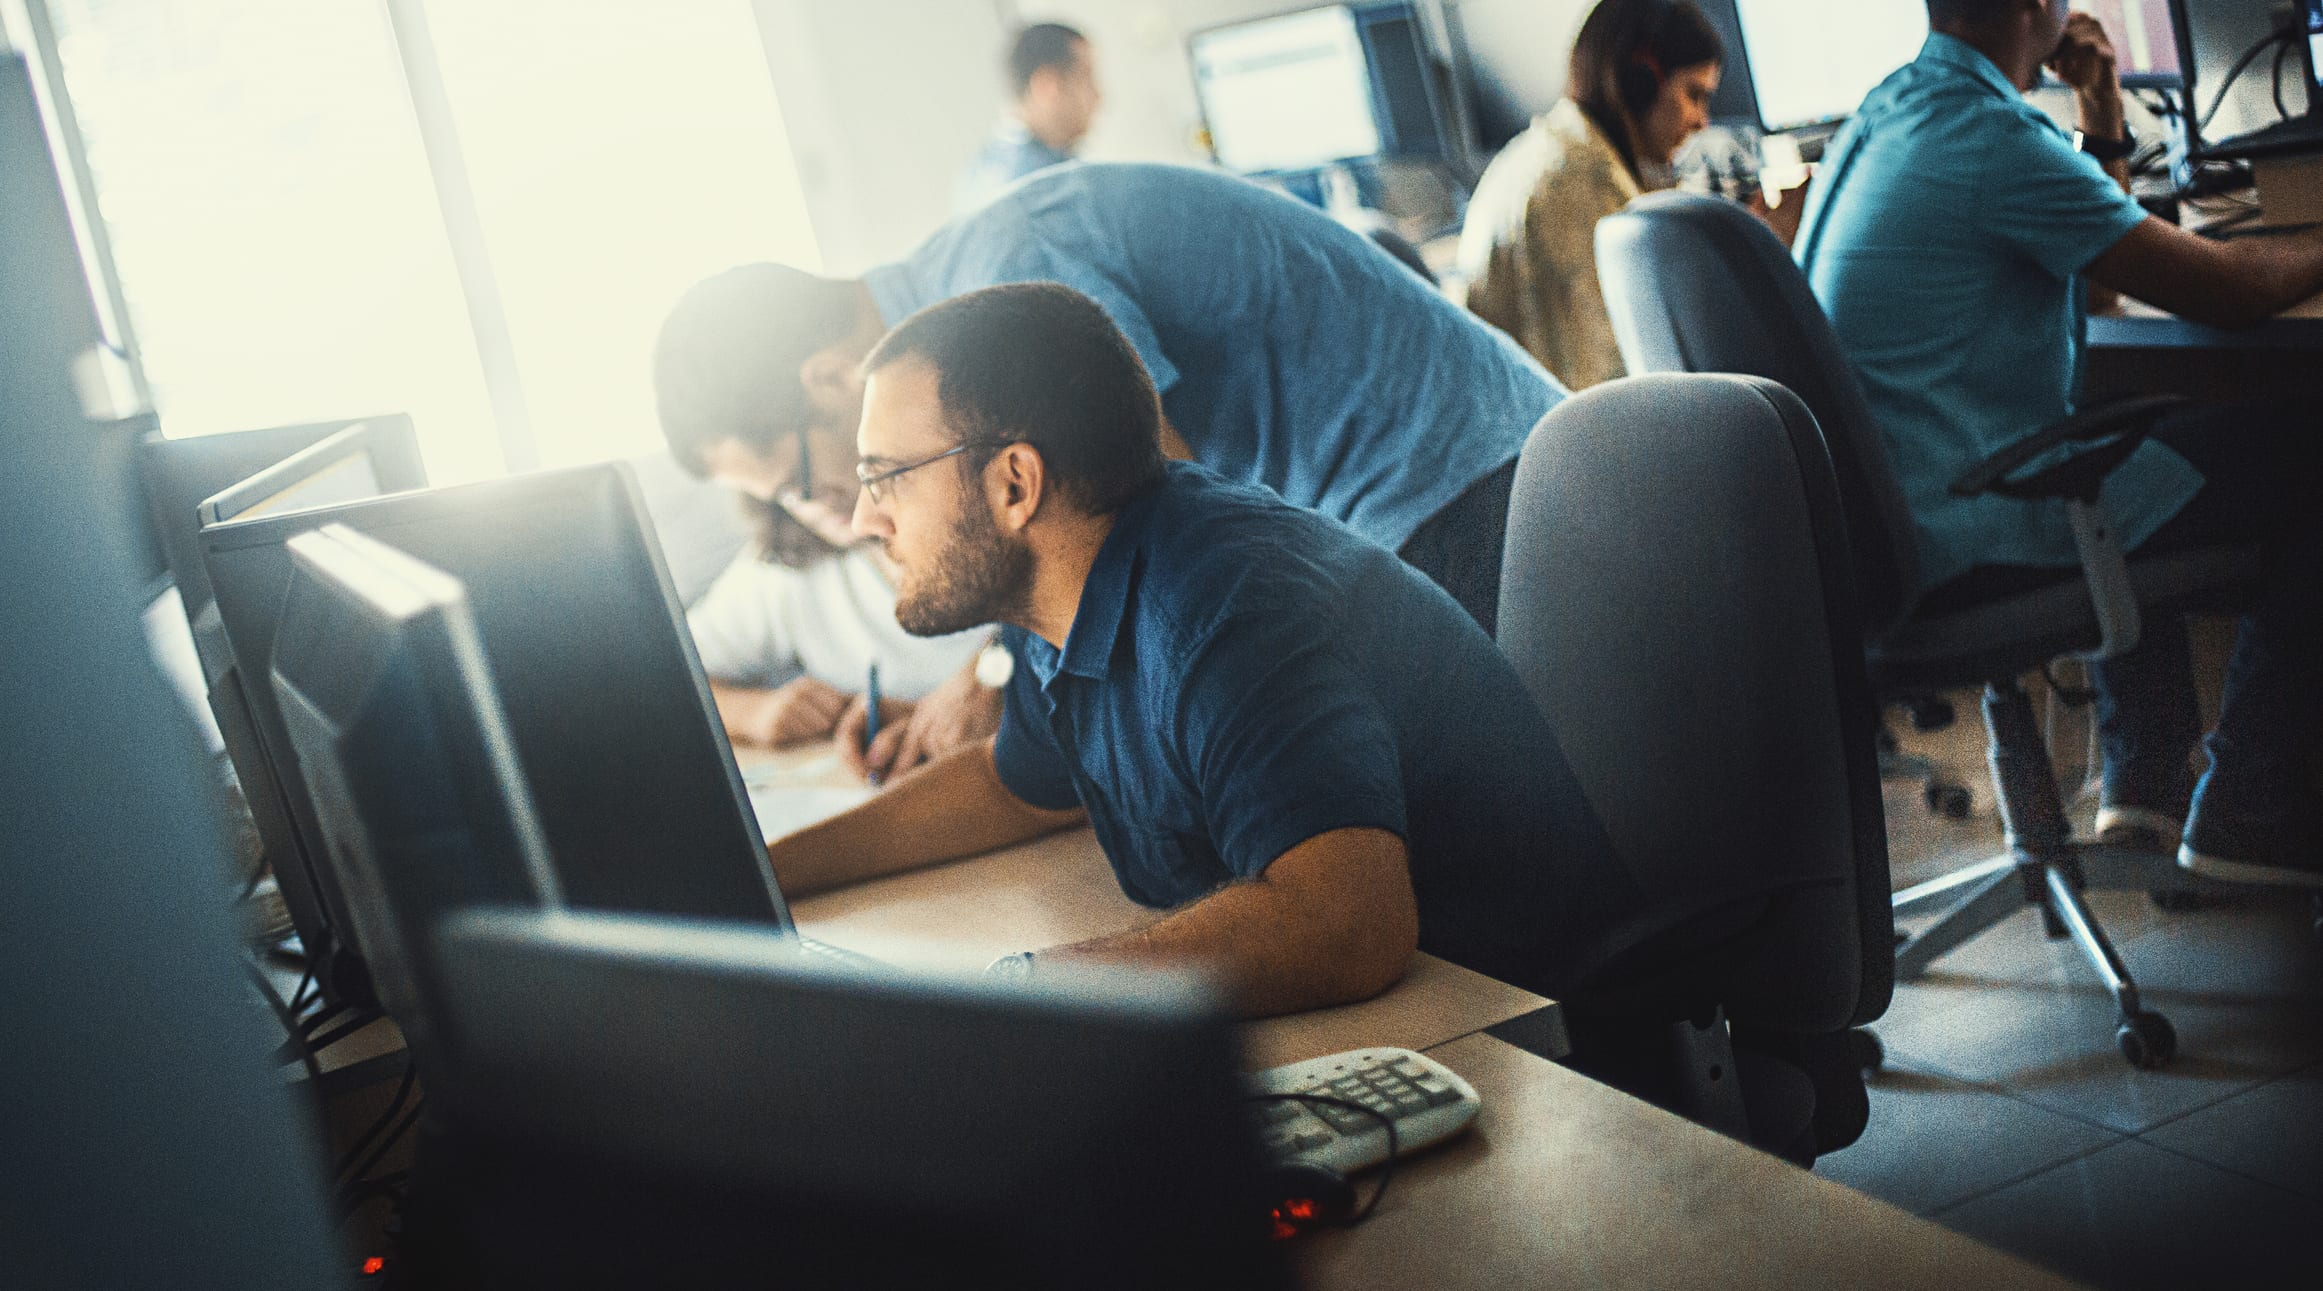 Group of mid 20's and 30's men and women engaged in application development job. They are seated by long desks back to back, each person in front of dual screen computer.